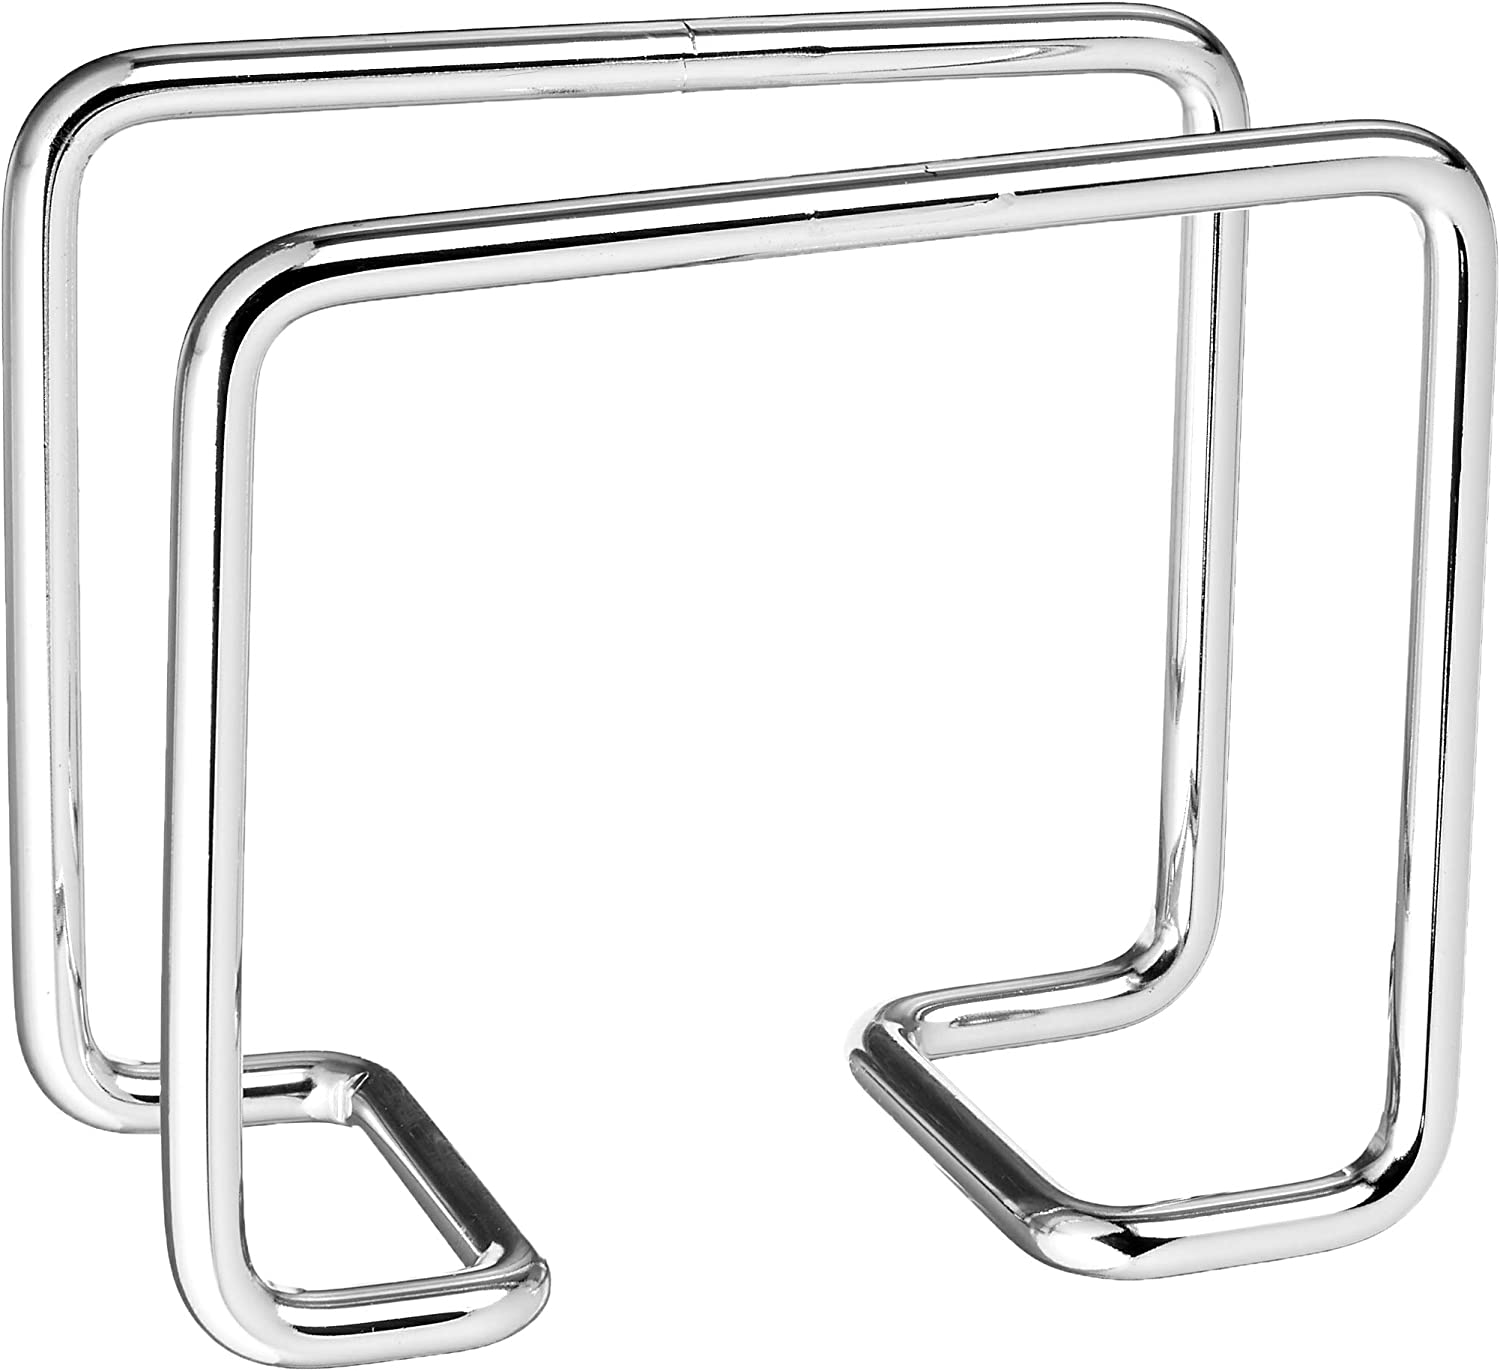 Spectrum Diversified Harper Freestanding Paper Napkin Holder for Use on the Kitchen Counter or Table, Chrome